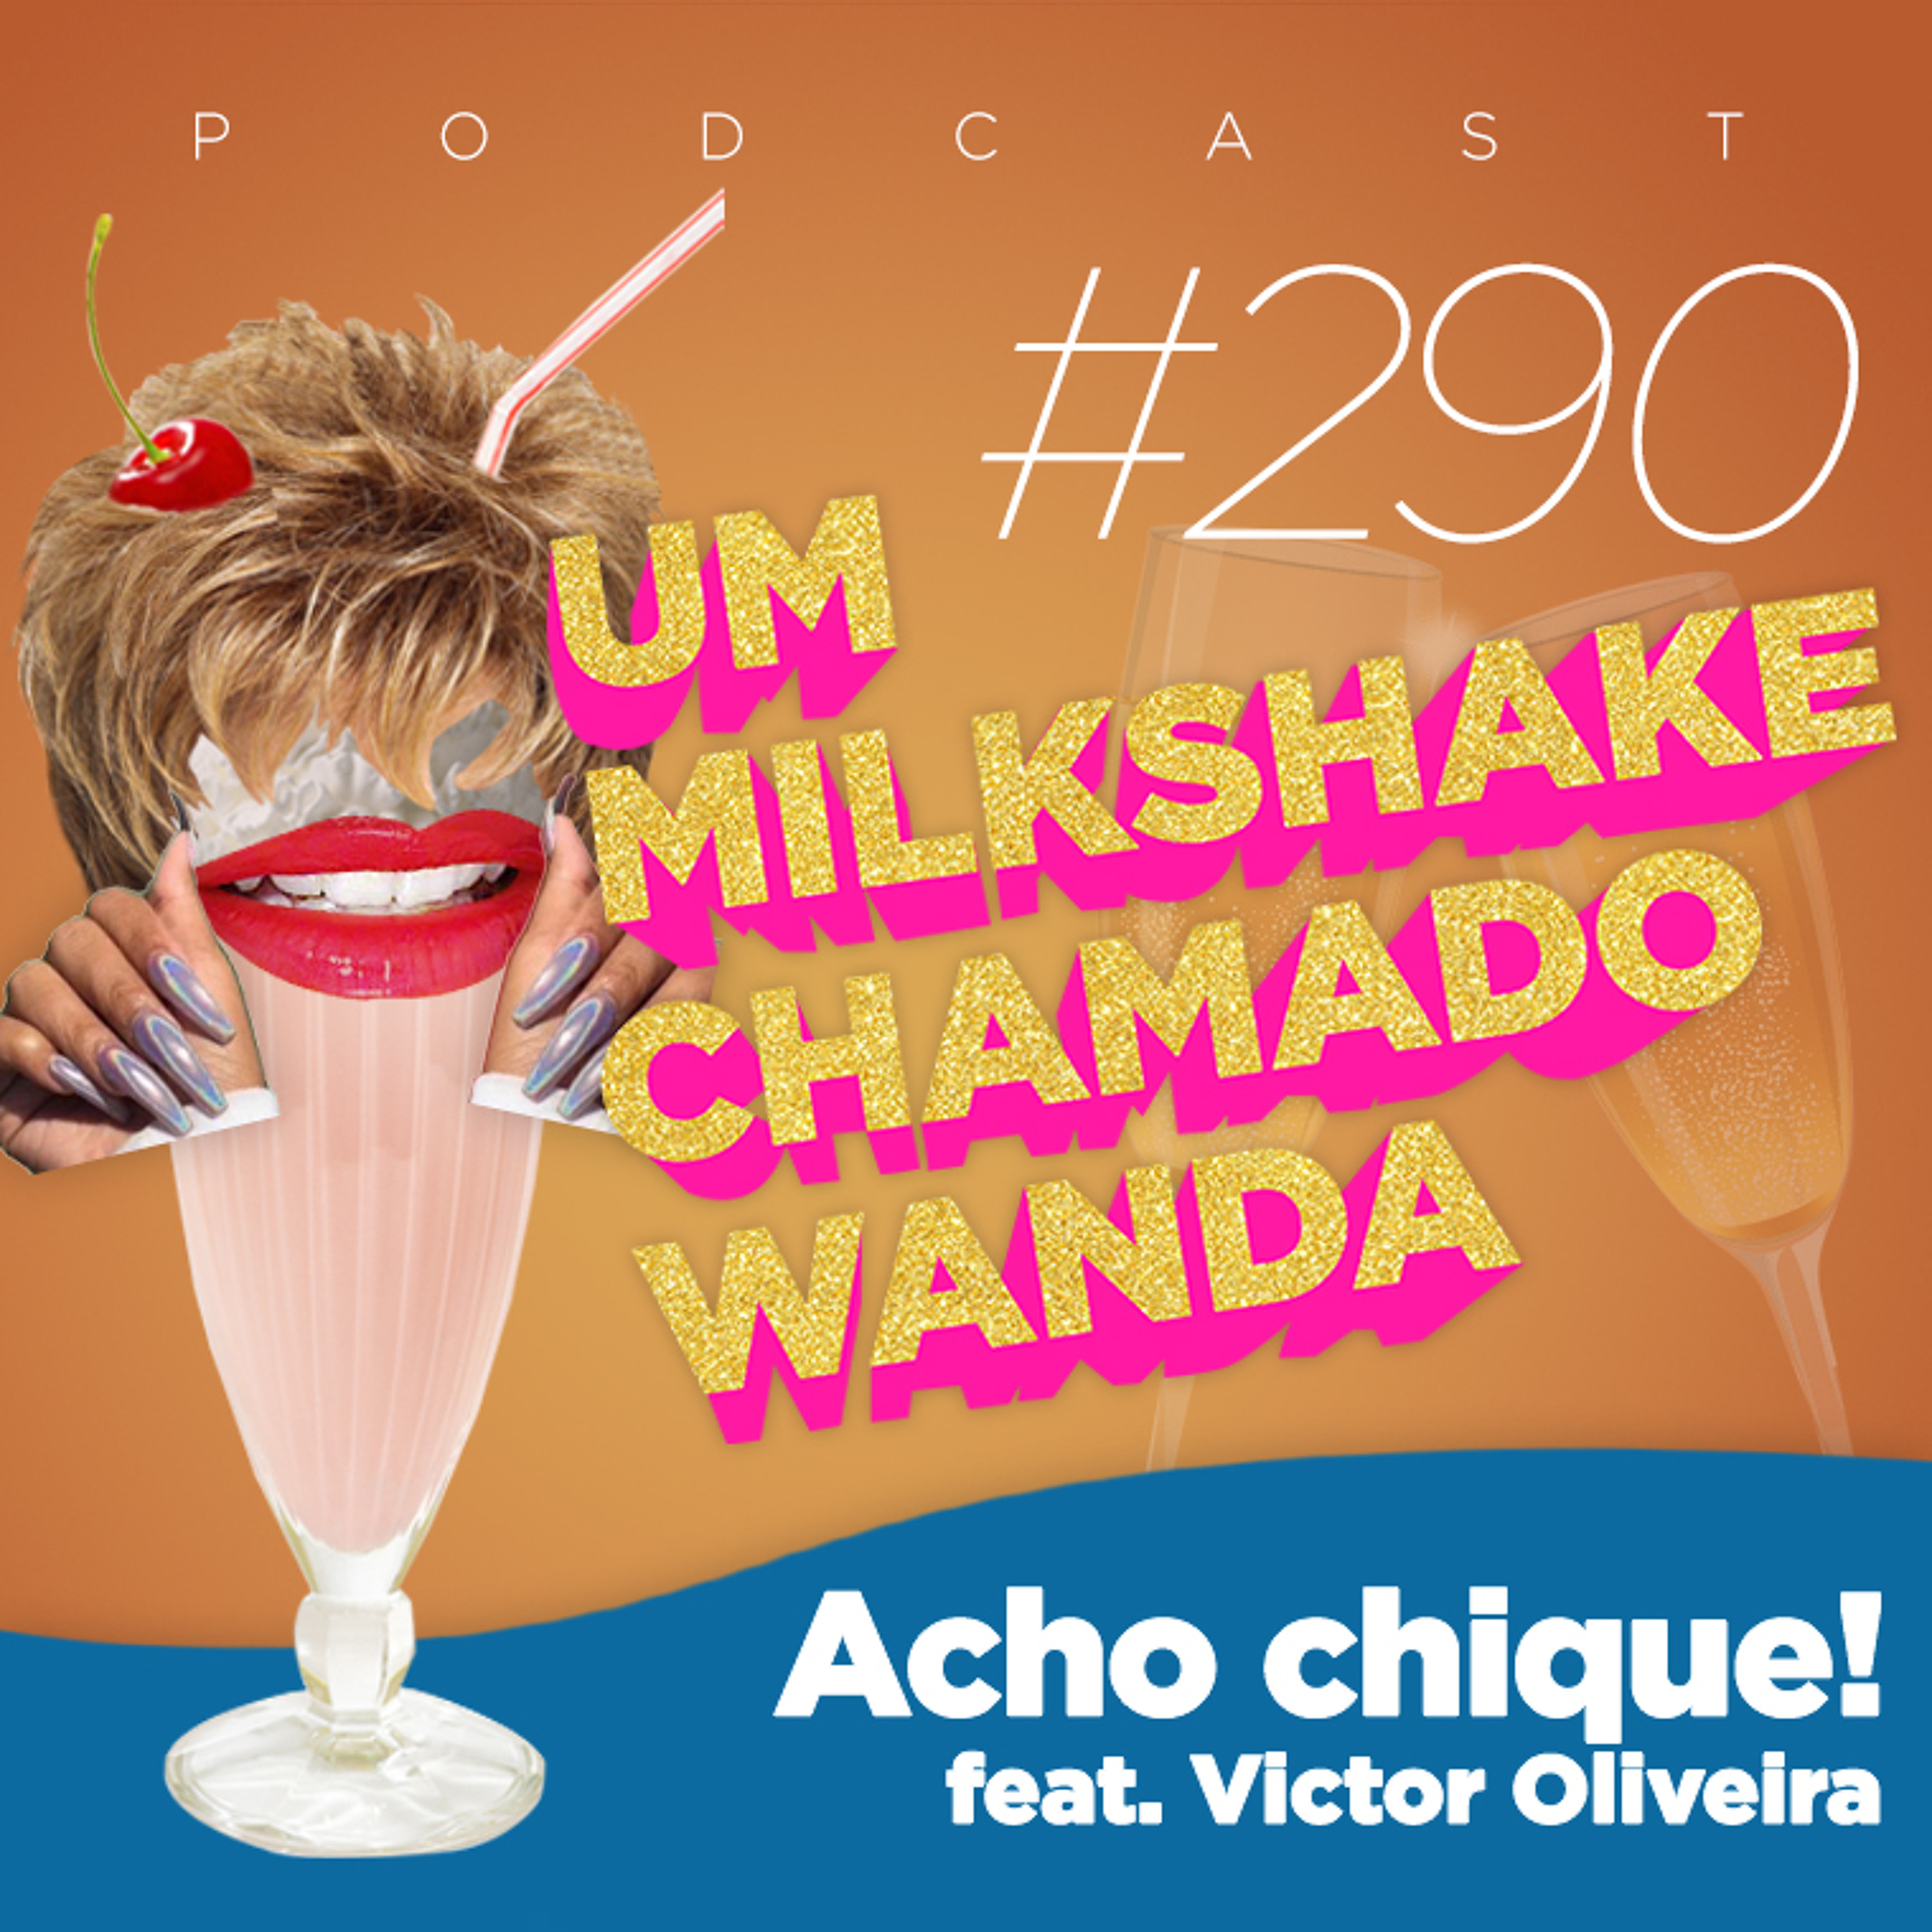 #290 - Acho chique! (feat. Victor Oliveira)